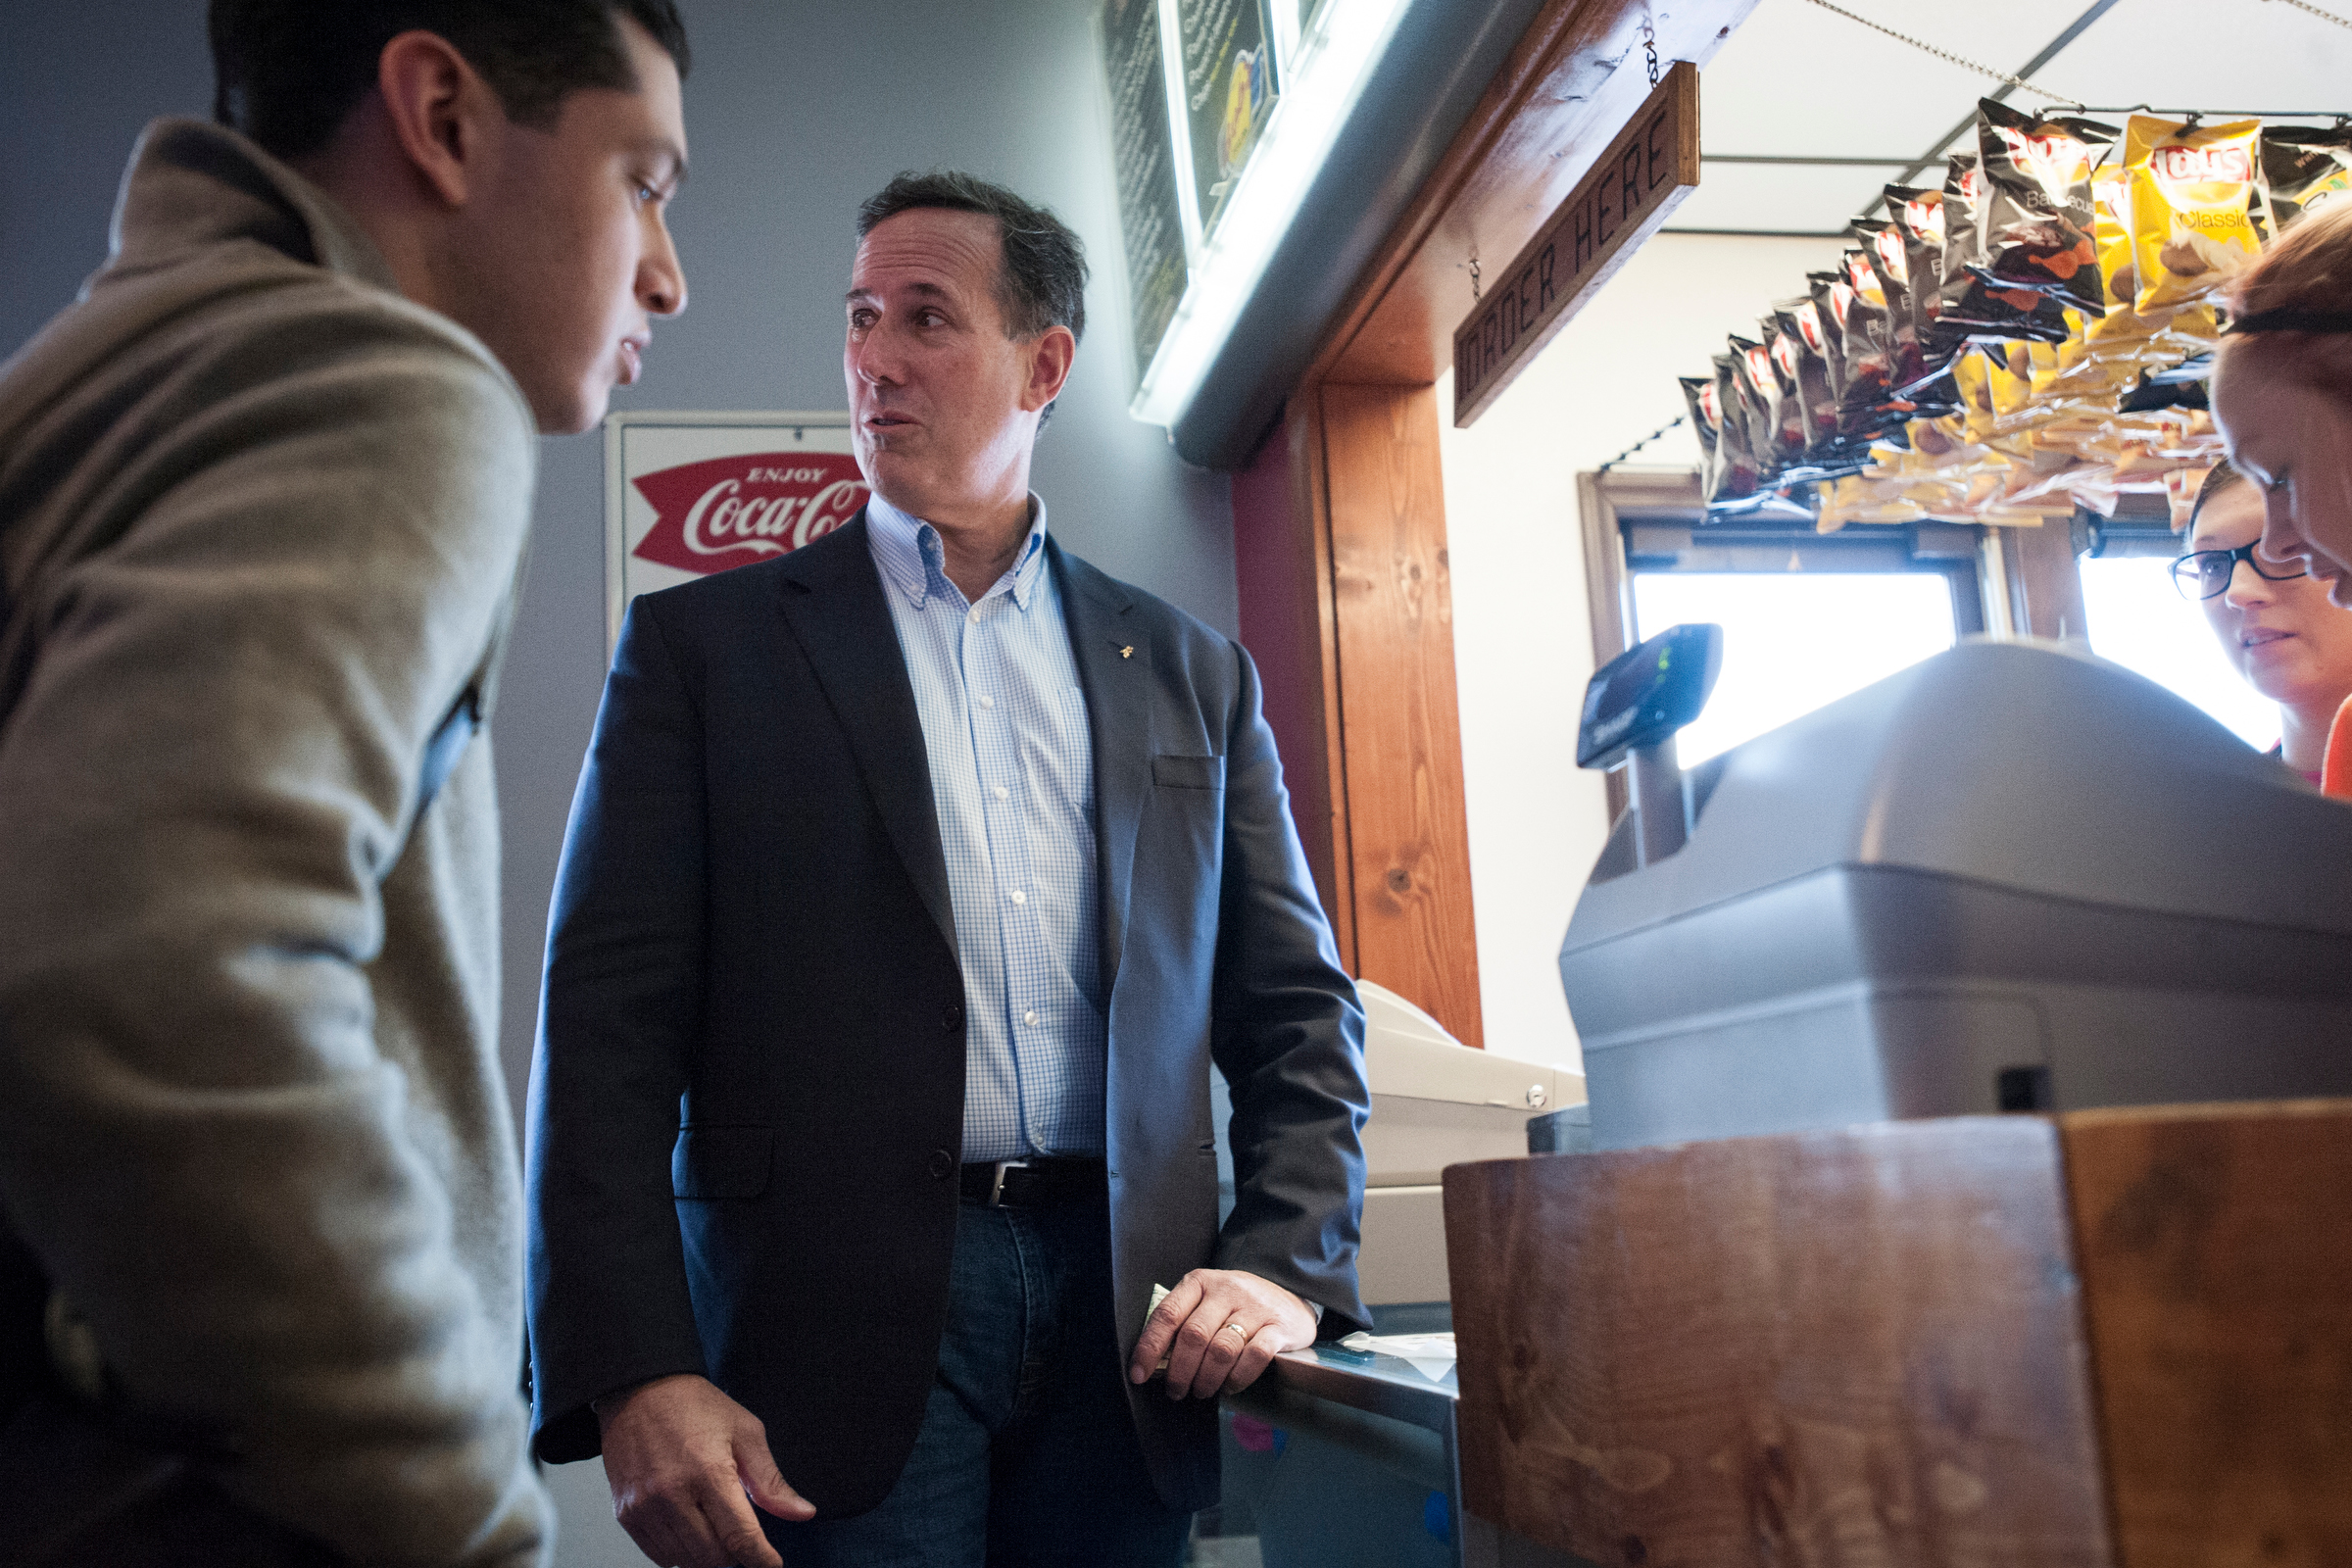 Republican presidential candidate Rick Santorum orders lunch for his staff at Bob's Drive Inn during a break between campaign stops in Le Mars, Iowa.